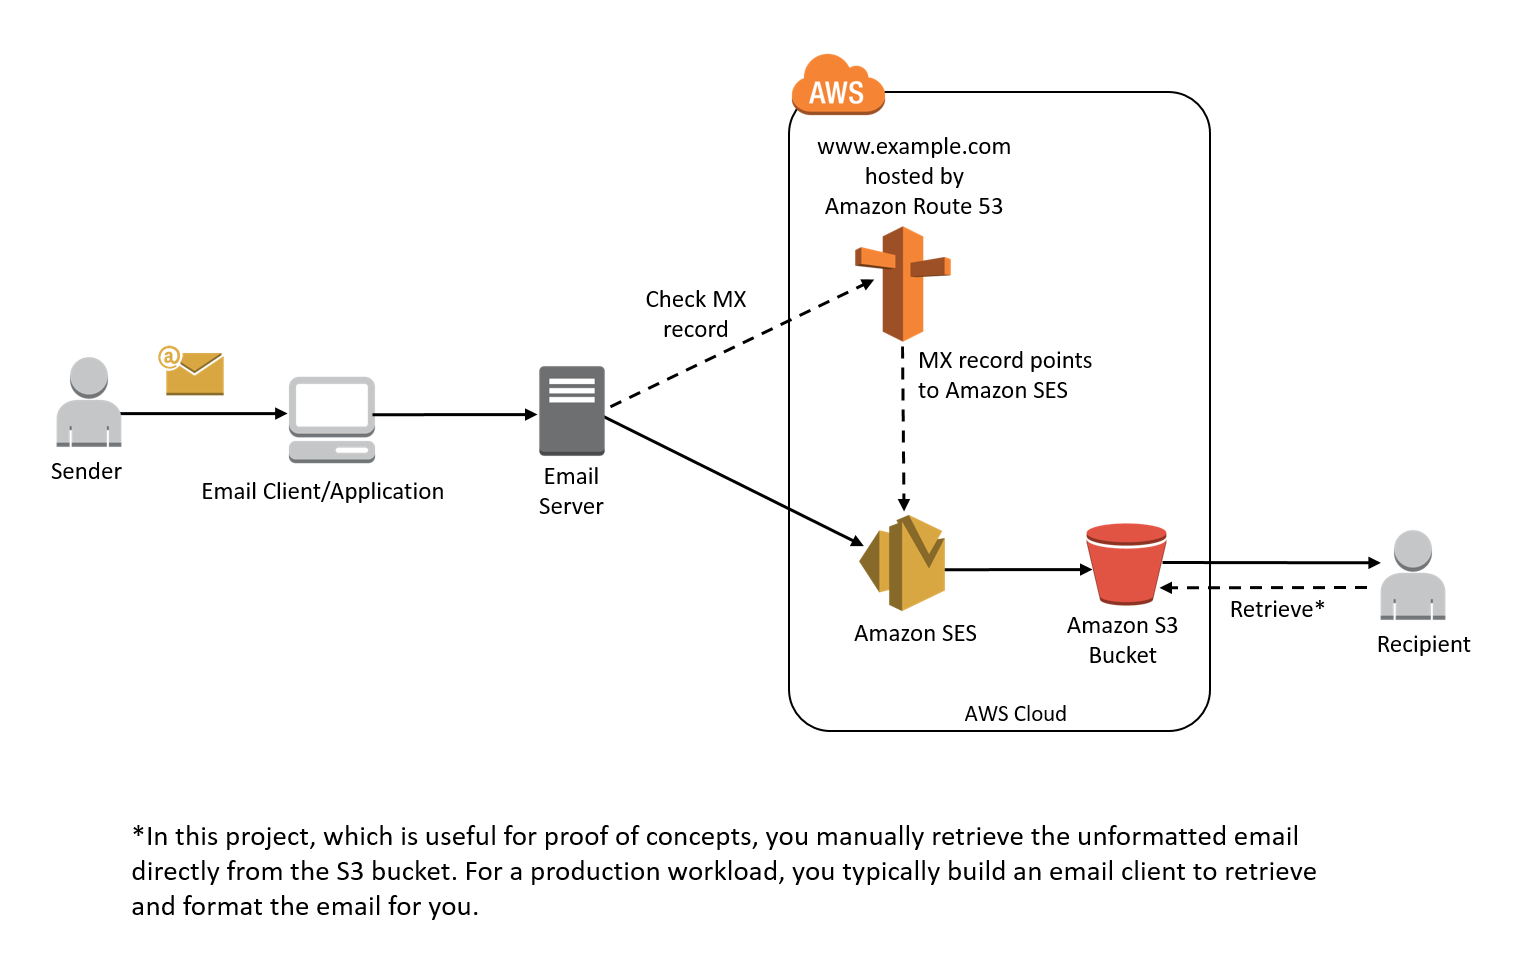 How to set up an email receiving pipeline with AWS - Amazon